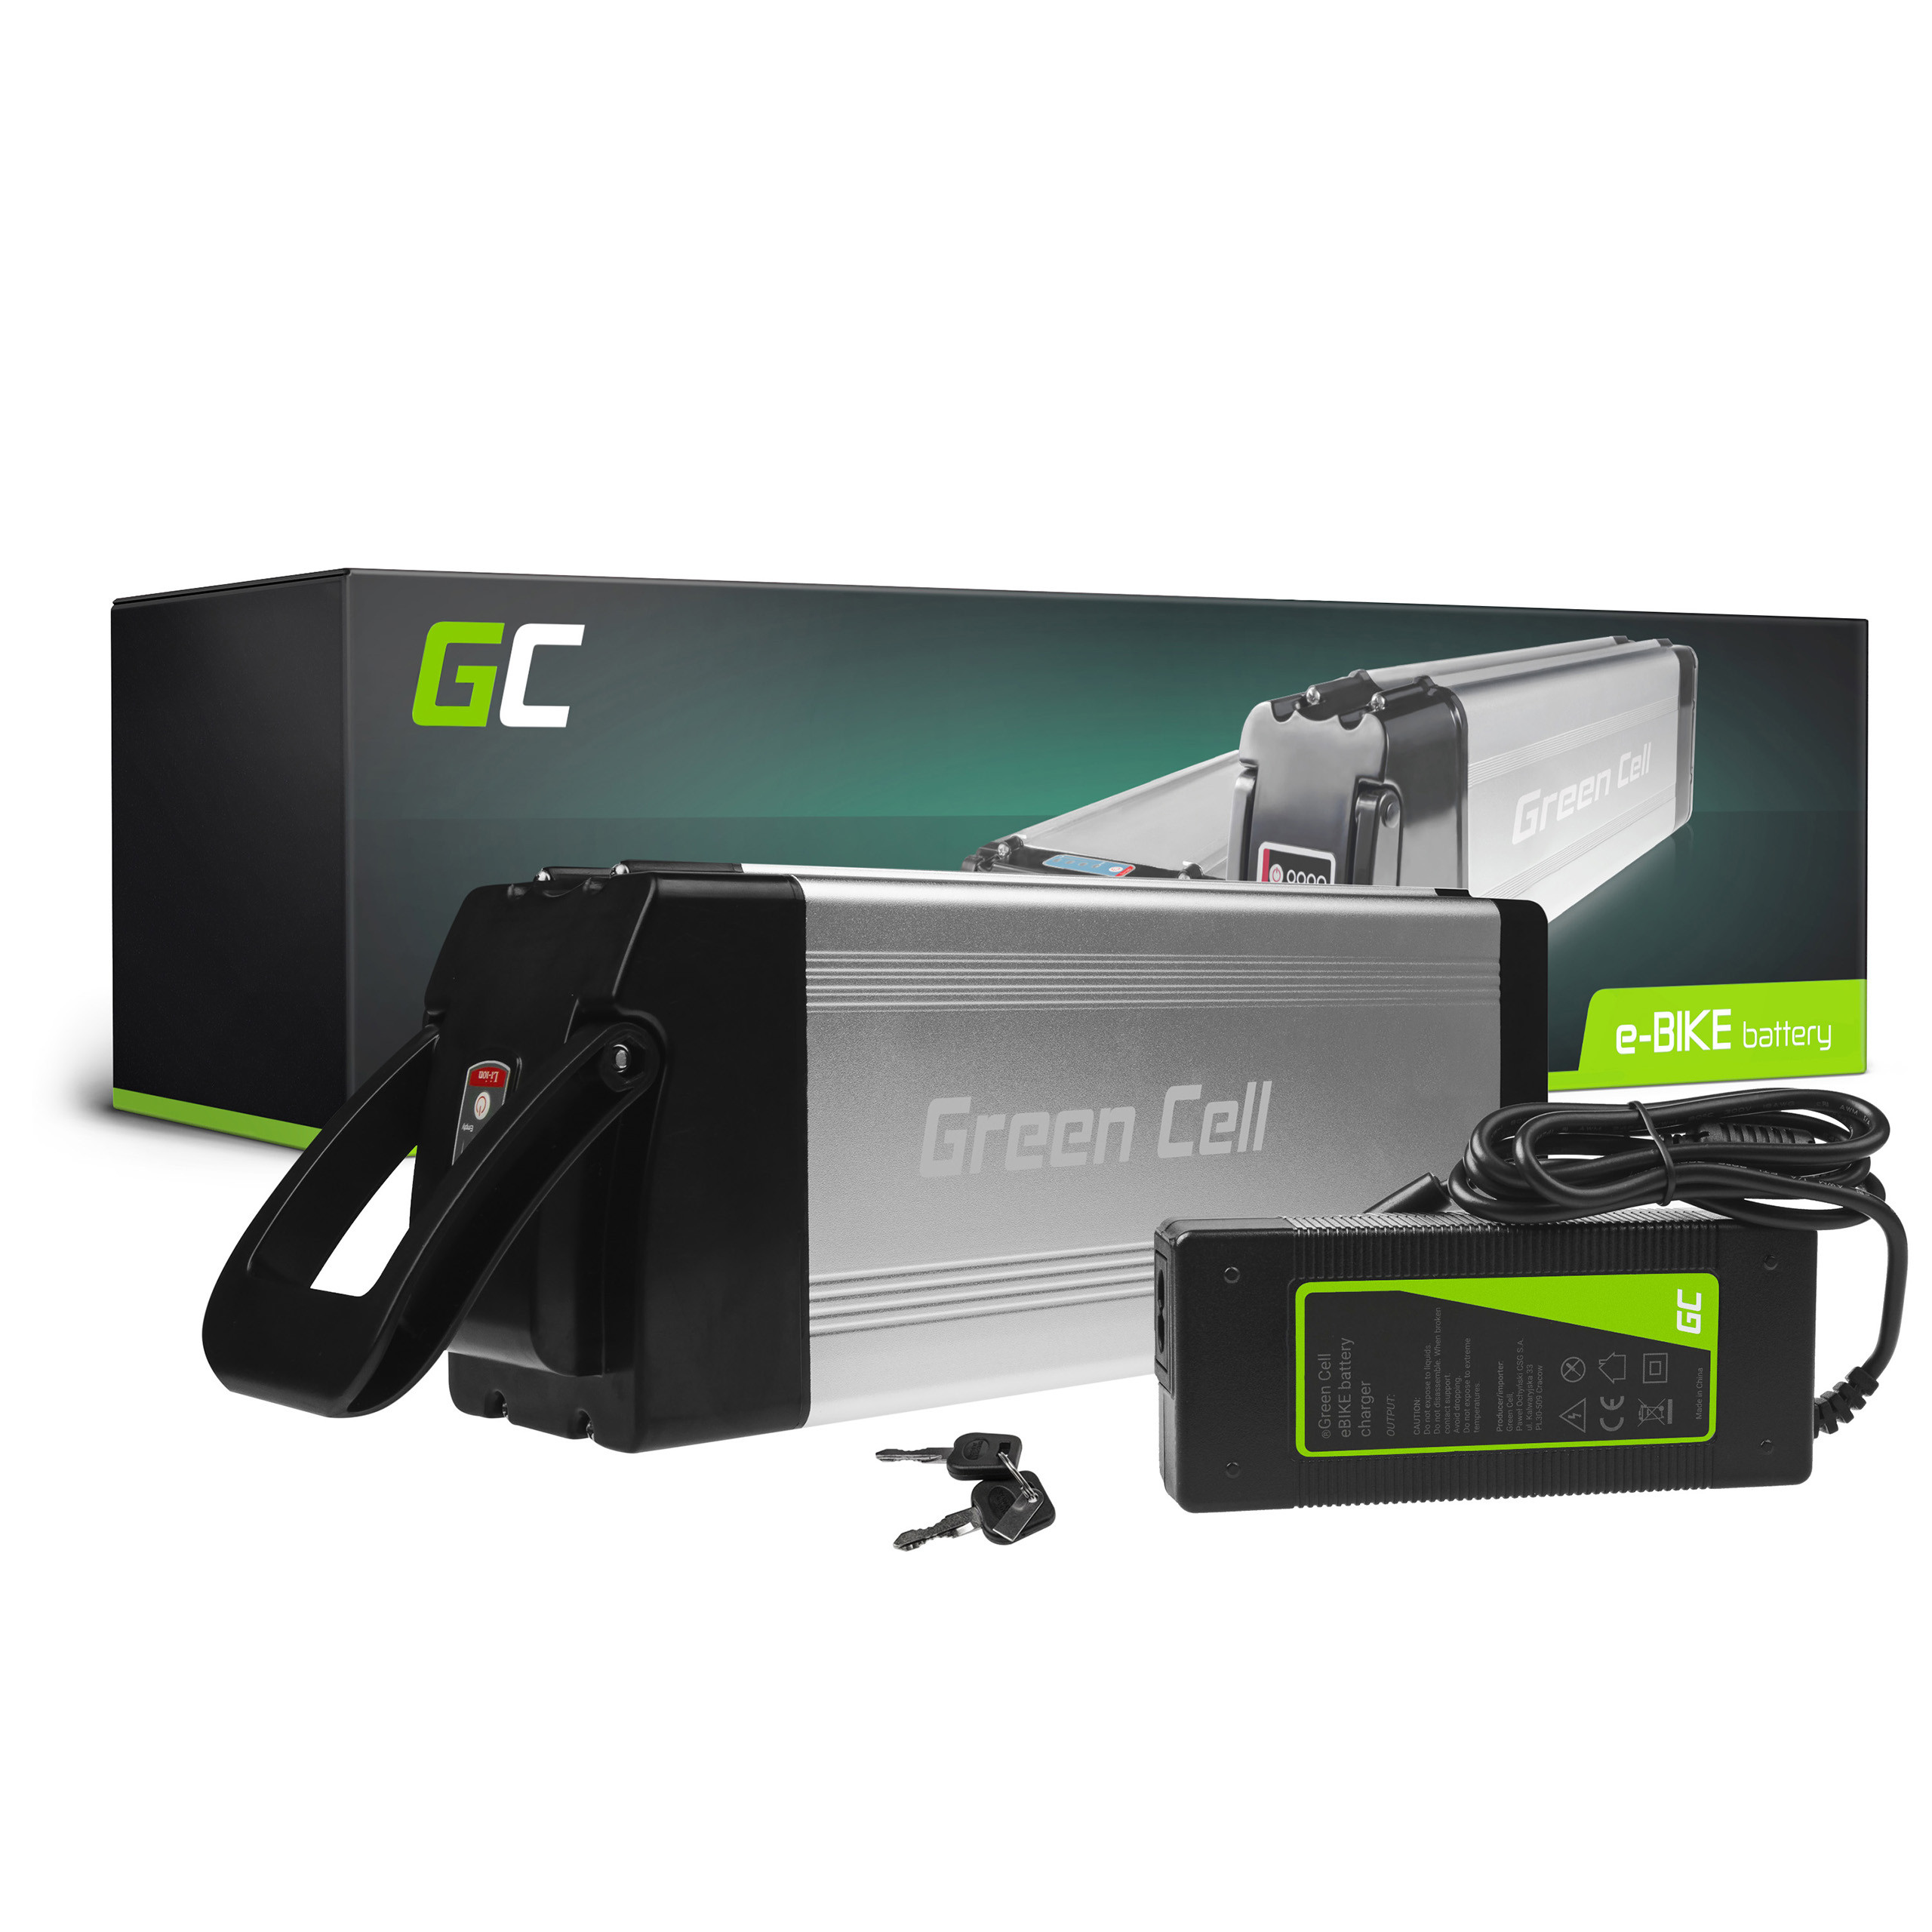 Green Cell E-Bike Baterie 24V 15Ah Silverfish with Charger